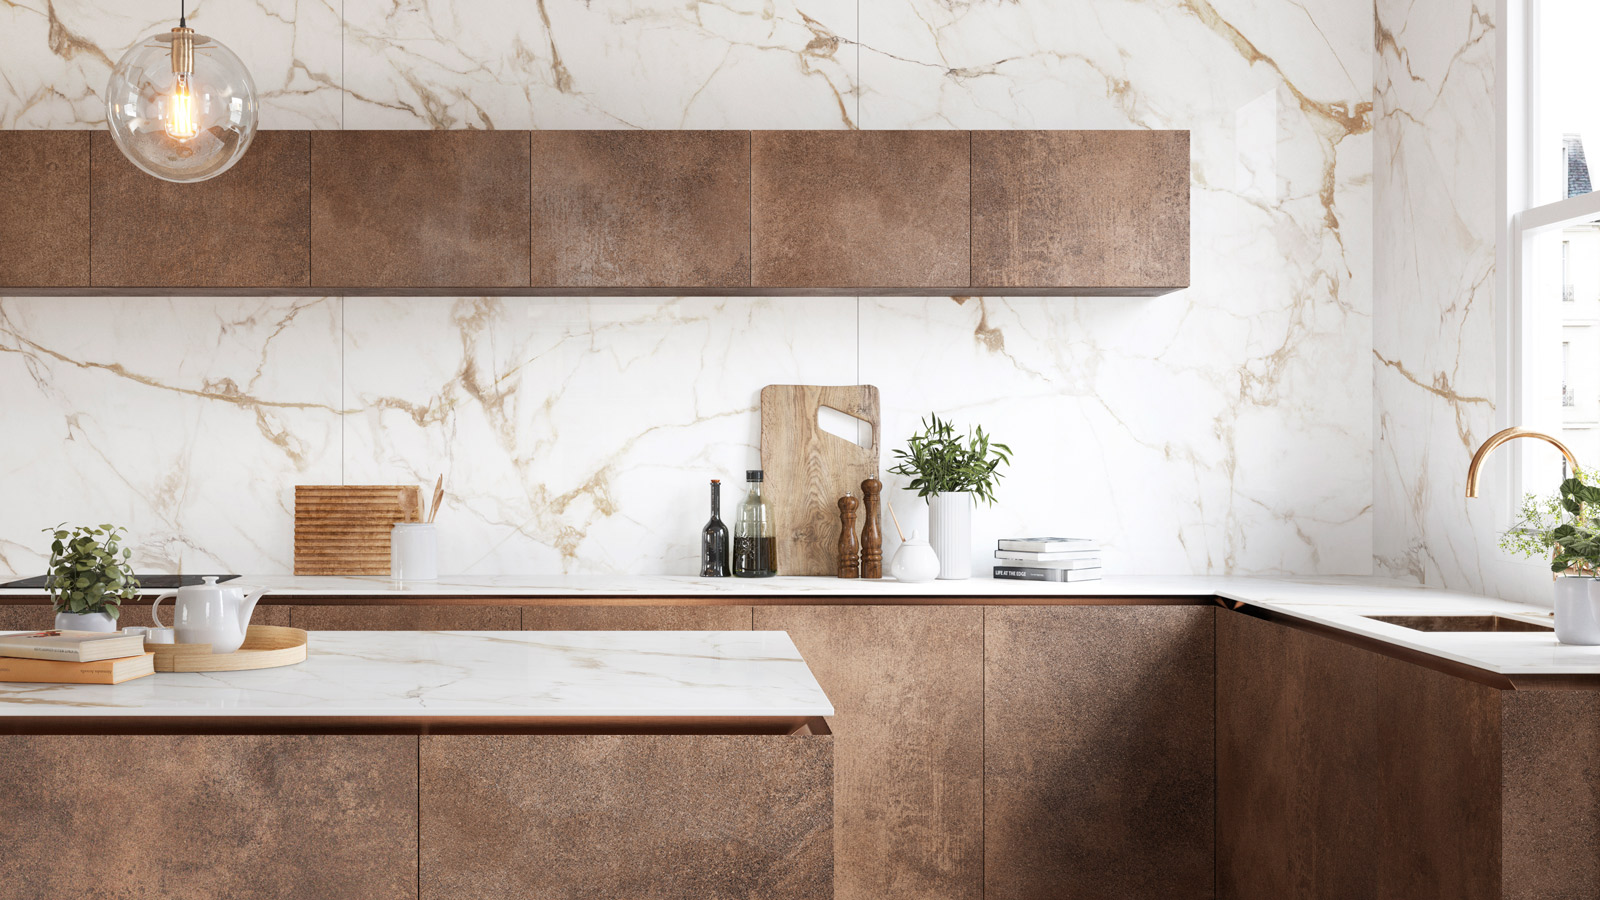 Give your kitchen a makeover with chic collections from Porcelanosa